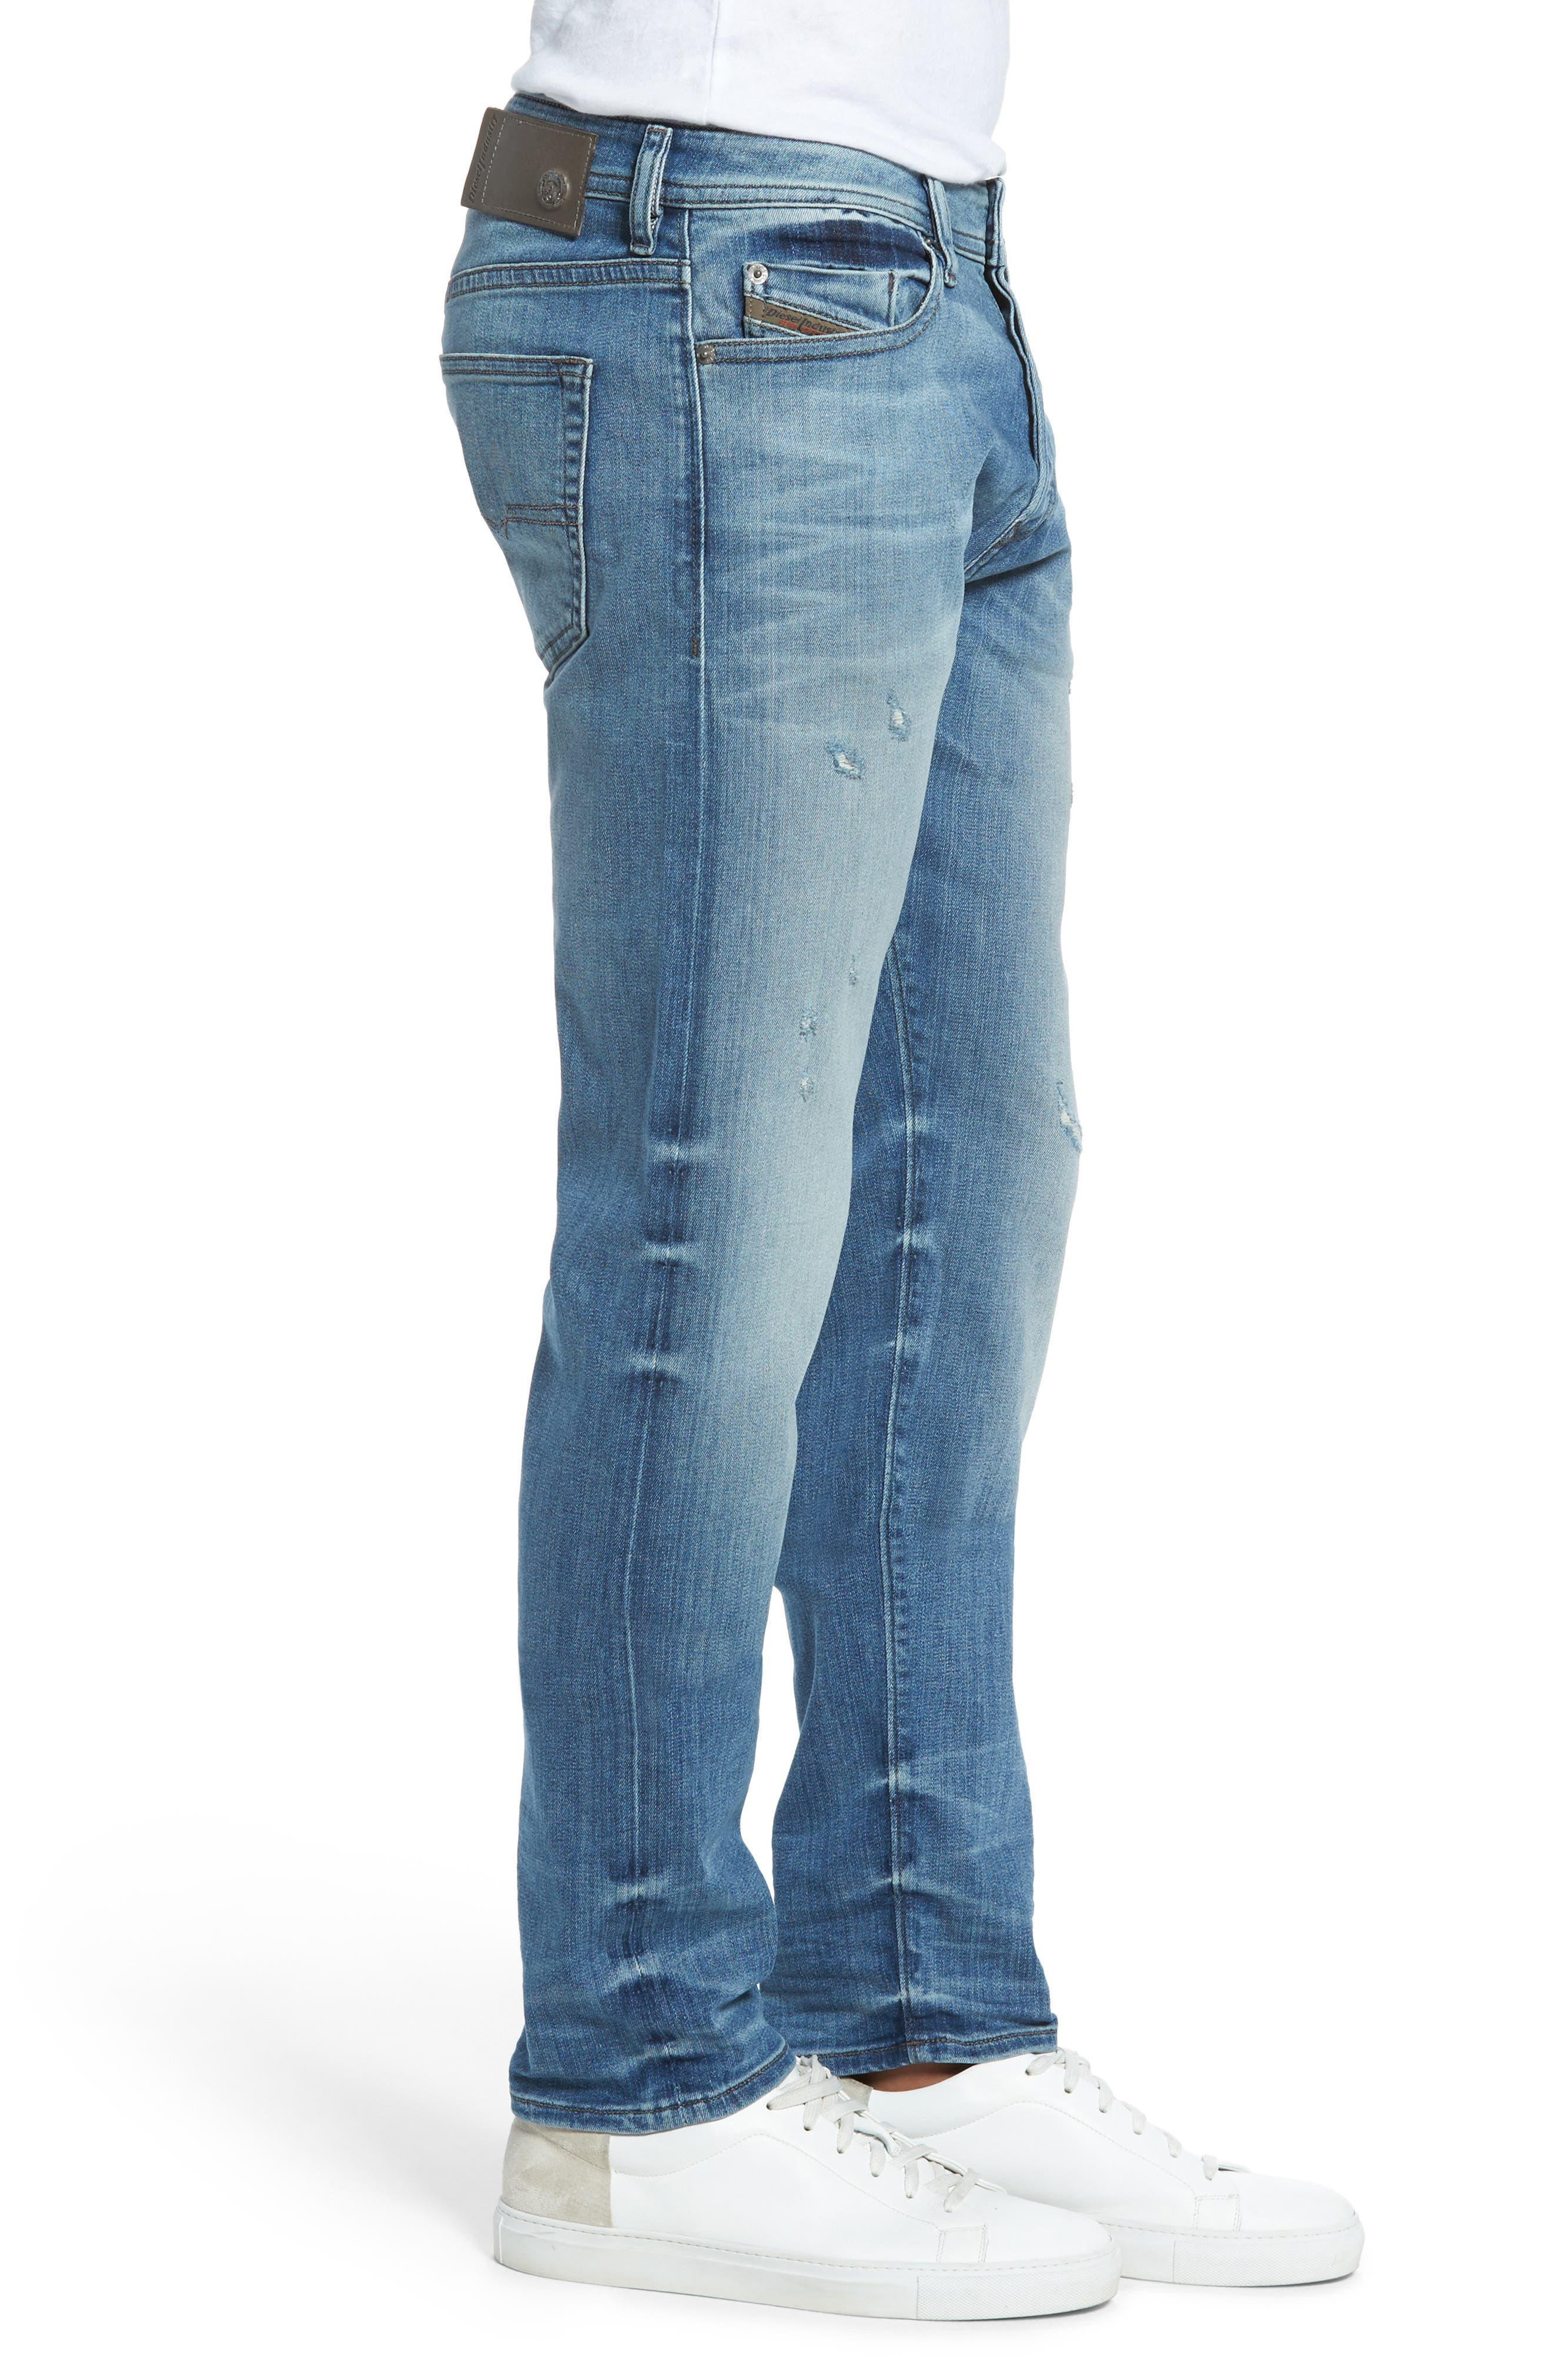 'Buster' Slim Straight Fit Jeans,                             Alternate thumbnail 4, color,                             400